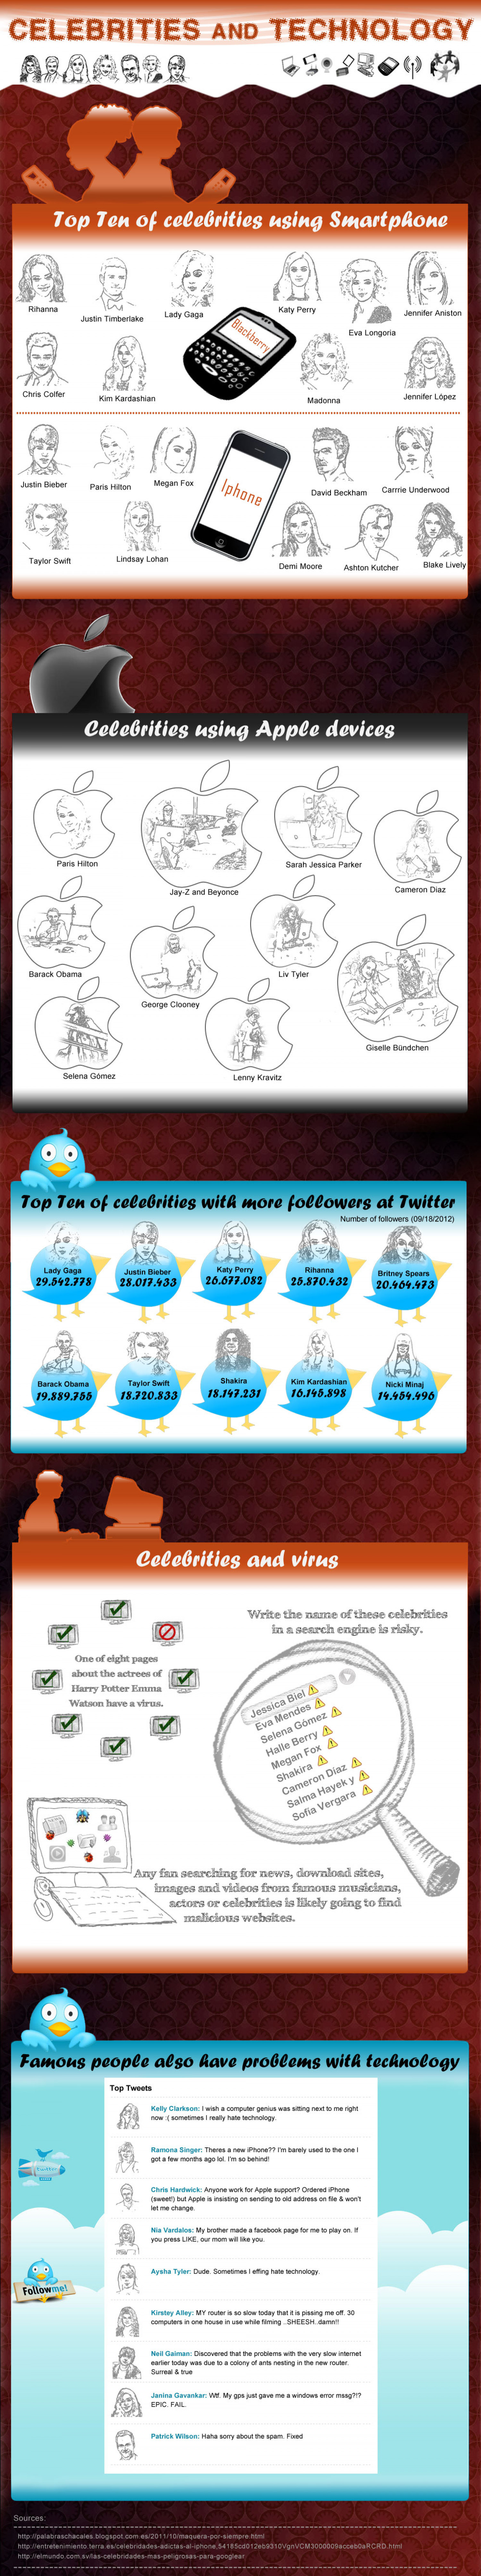 Top Celebrities using Smartphone Infographic